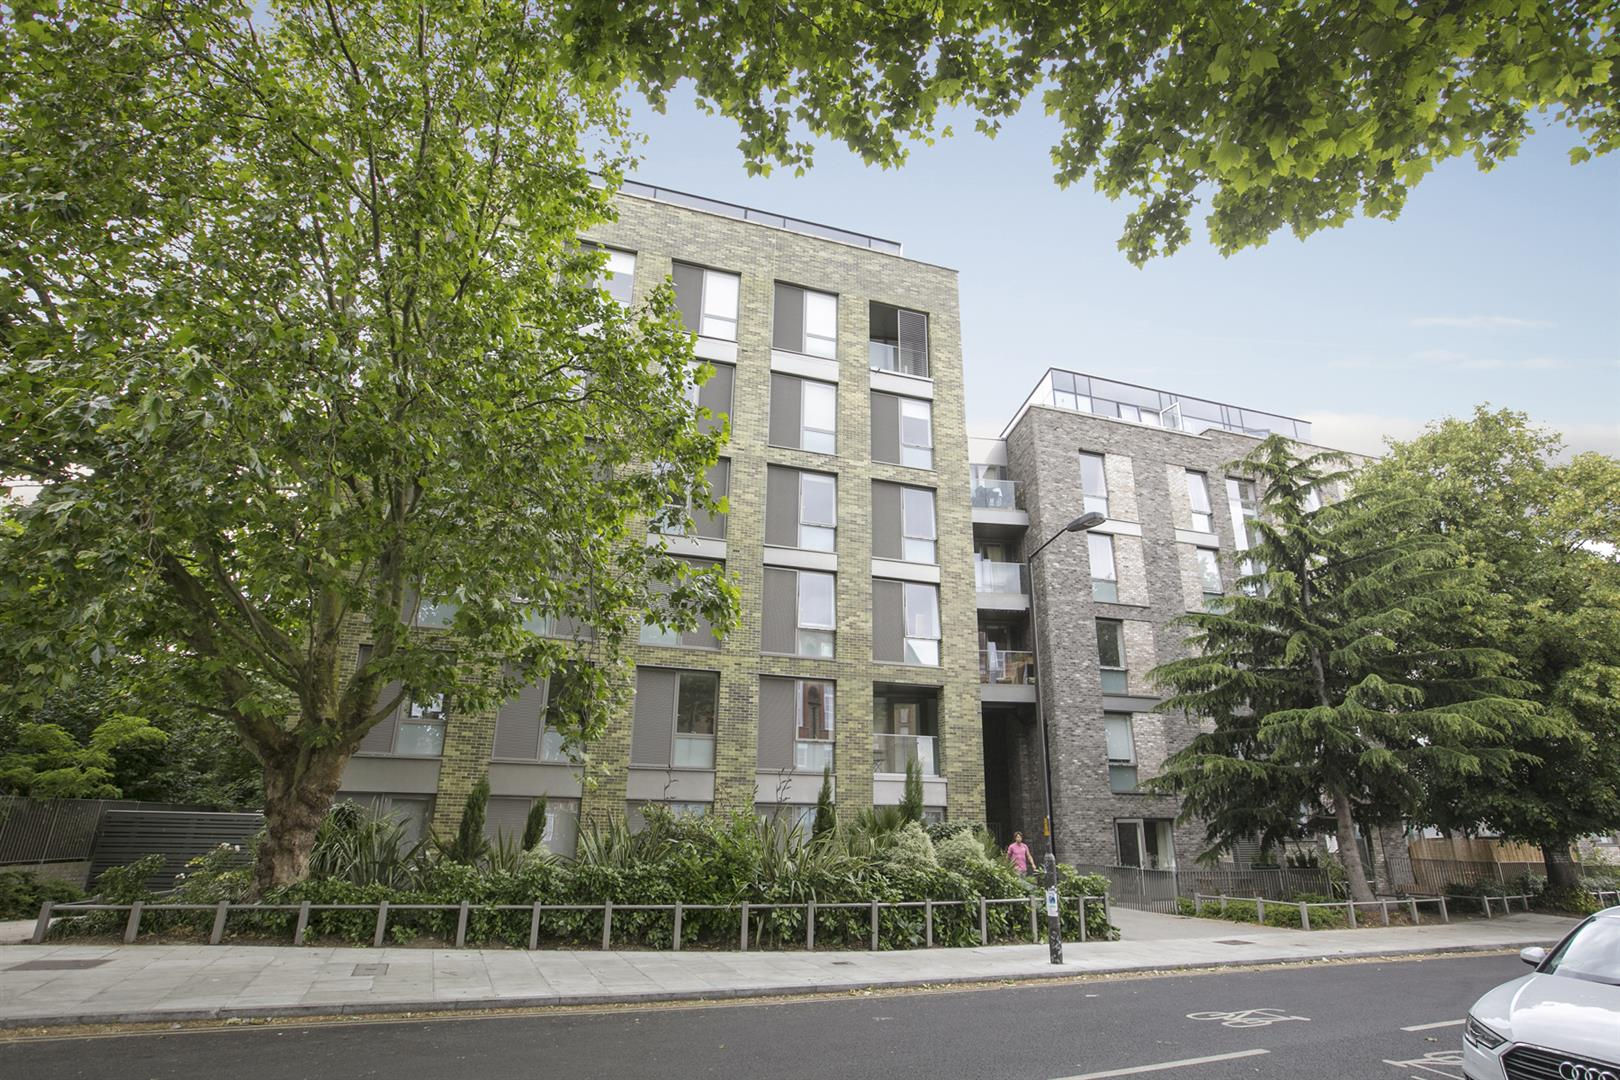 Flat - Purpose Built For Sale in Woods Road, Peckham, SE15 619 view4